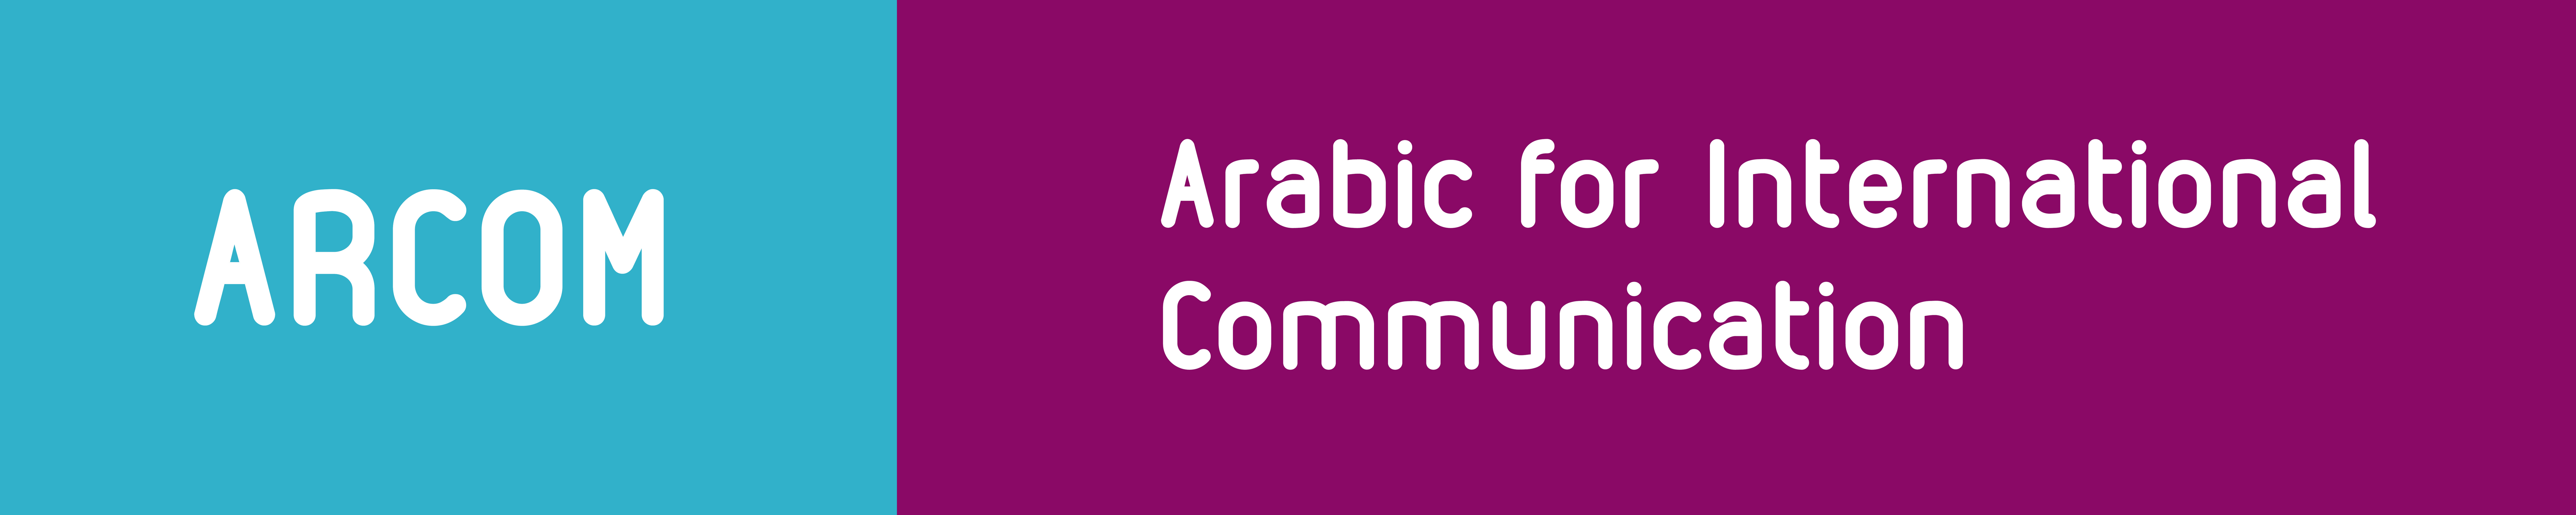 Bachelor of Arts (Hons.) in Arabic for International Communication